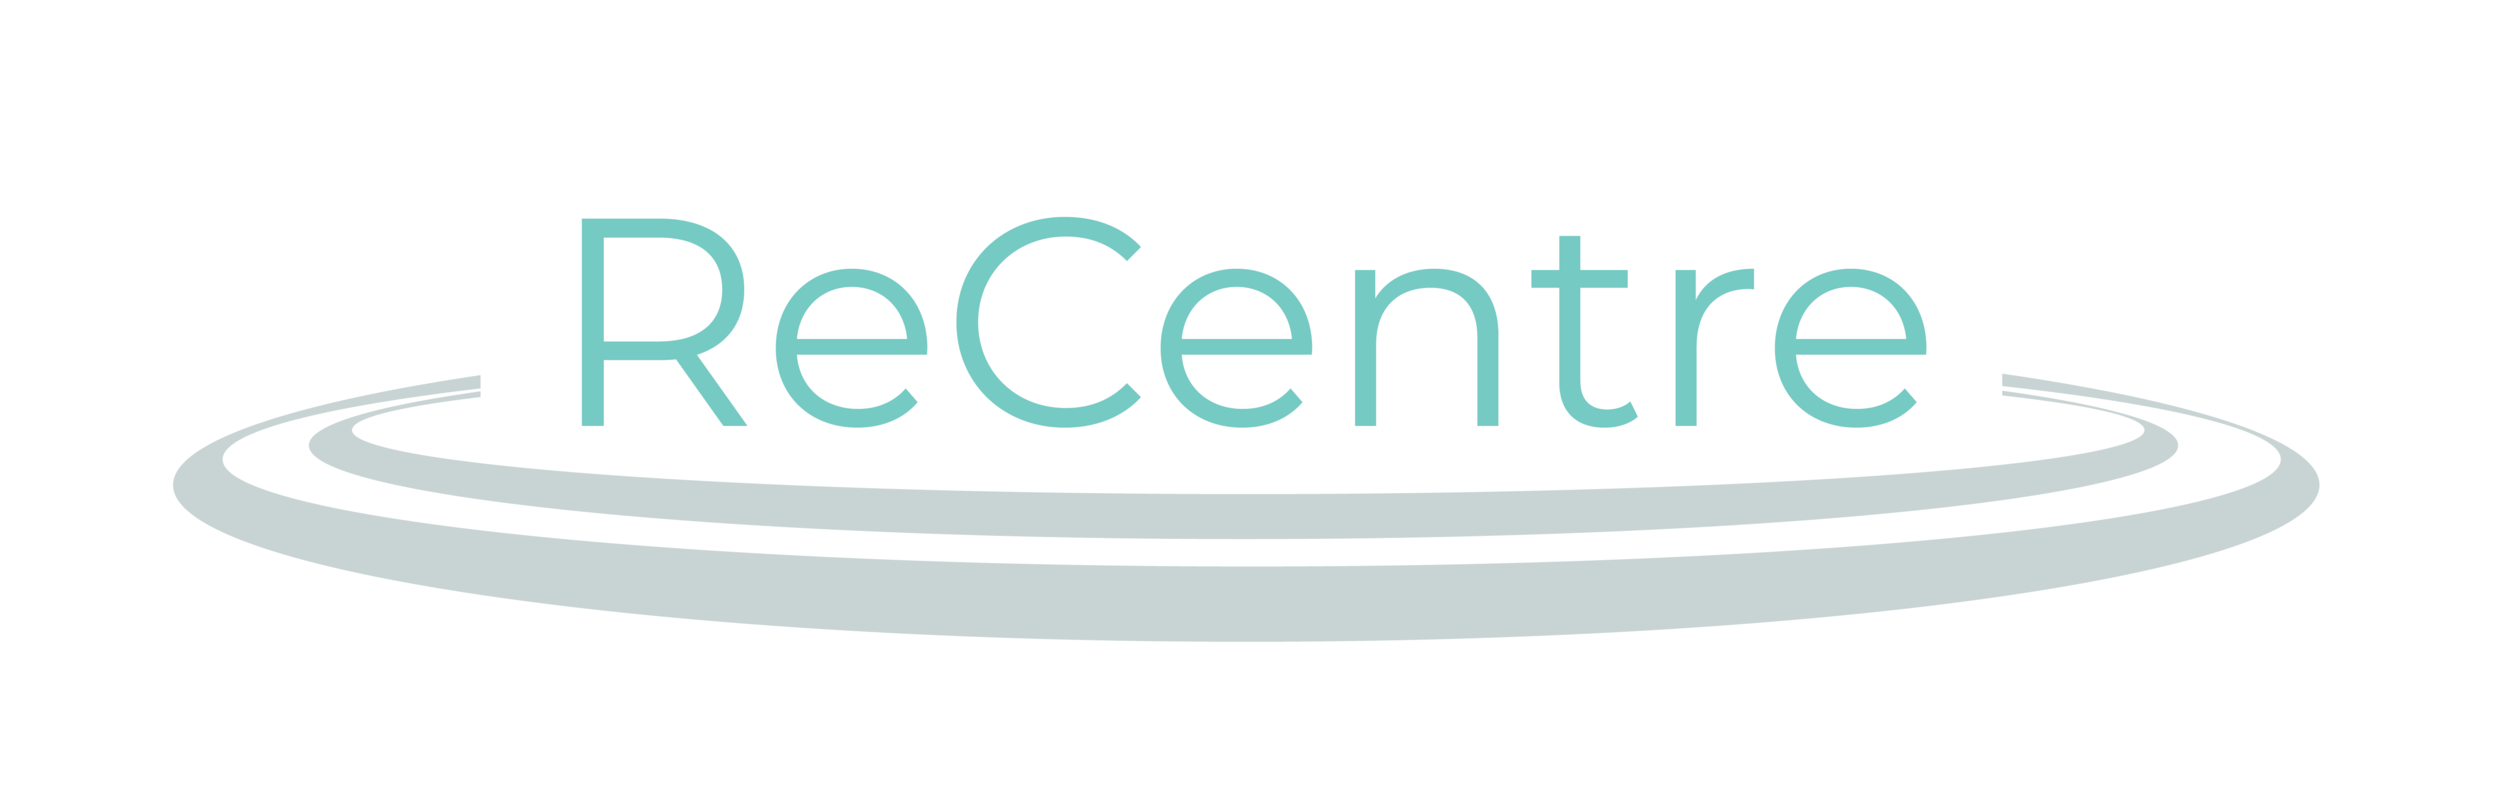 The ReCentre logo, designed by one of my group members.